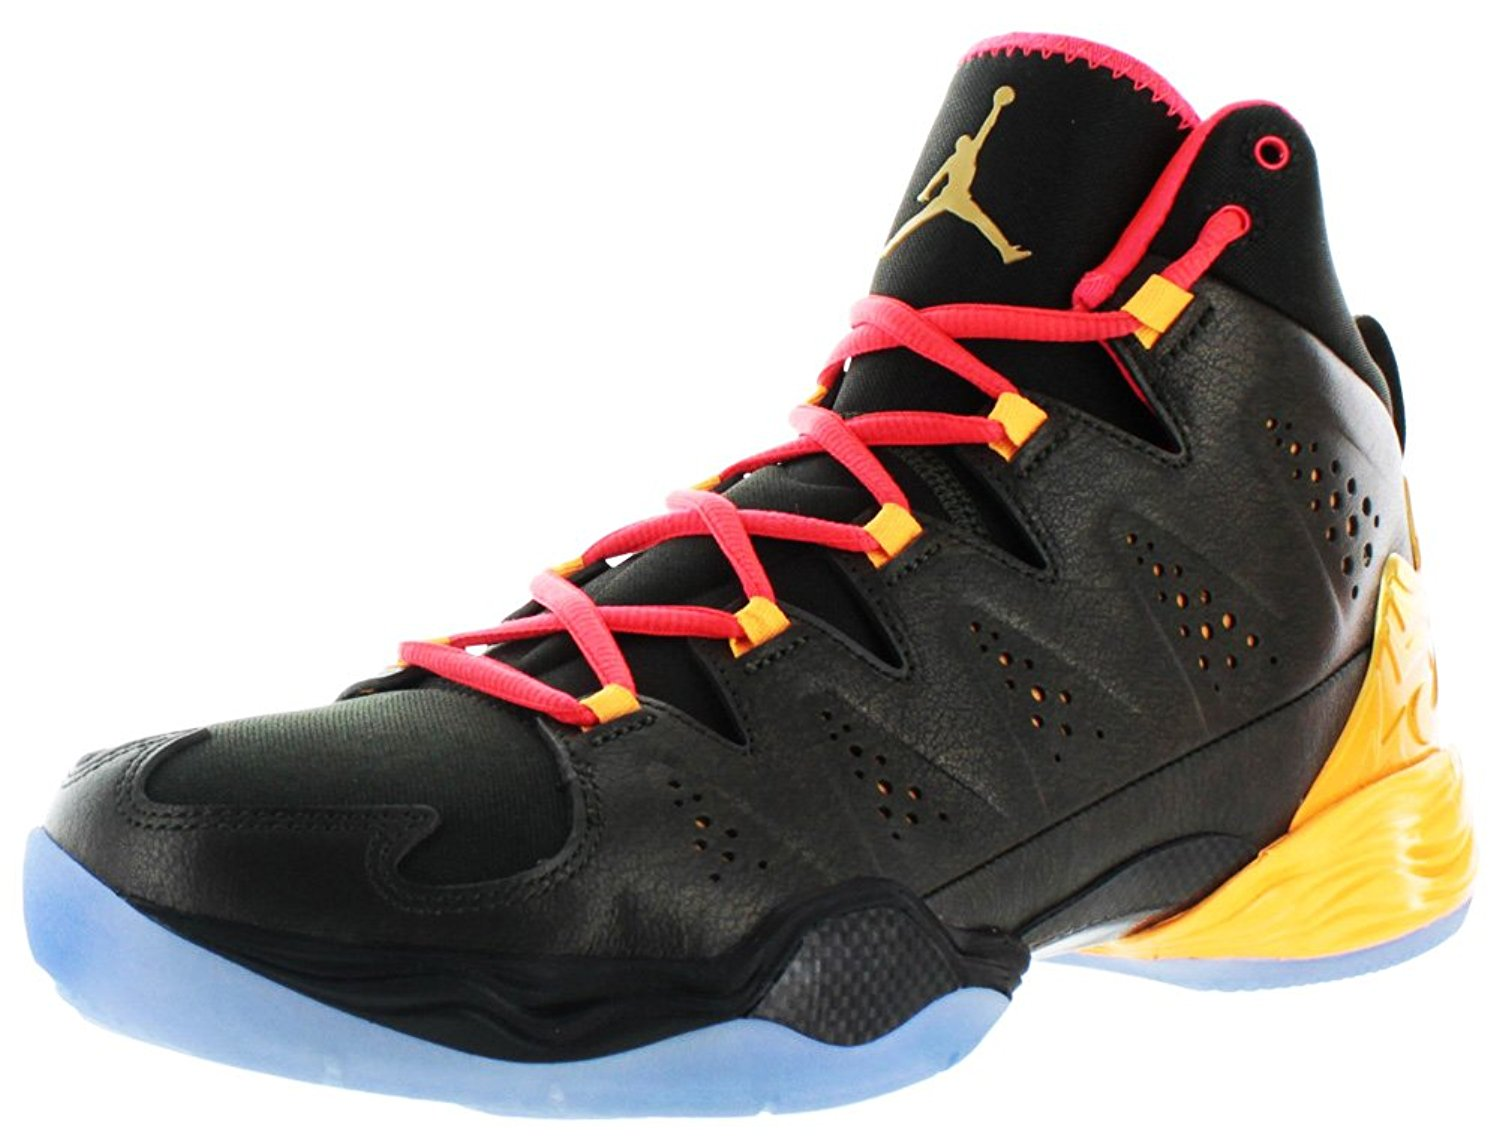 low priced 8228d 1a920 Get Quotations · Jordan Nike Melo 10 Mens Basketball Shoes Carmelo Anthony  Blk Sz 11